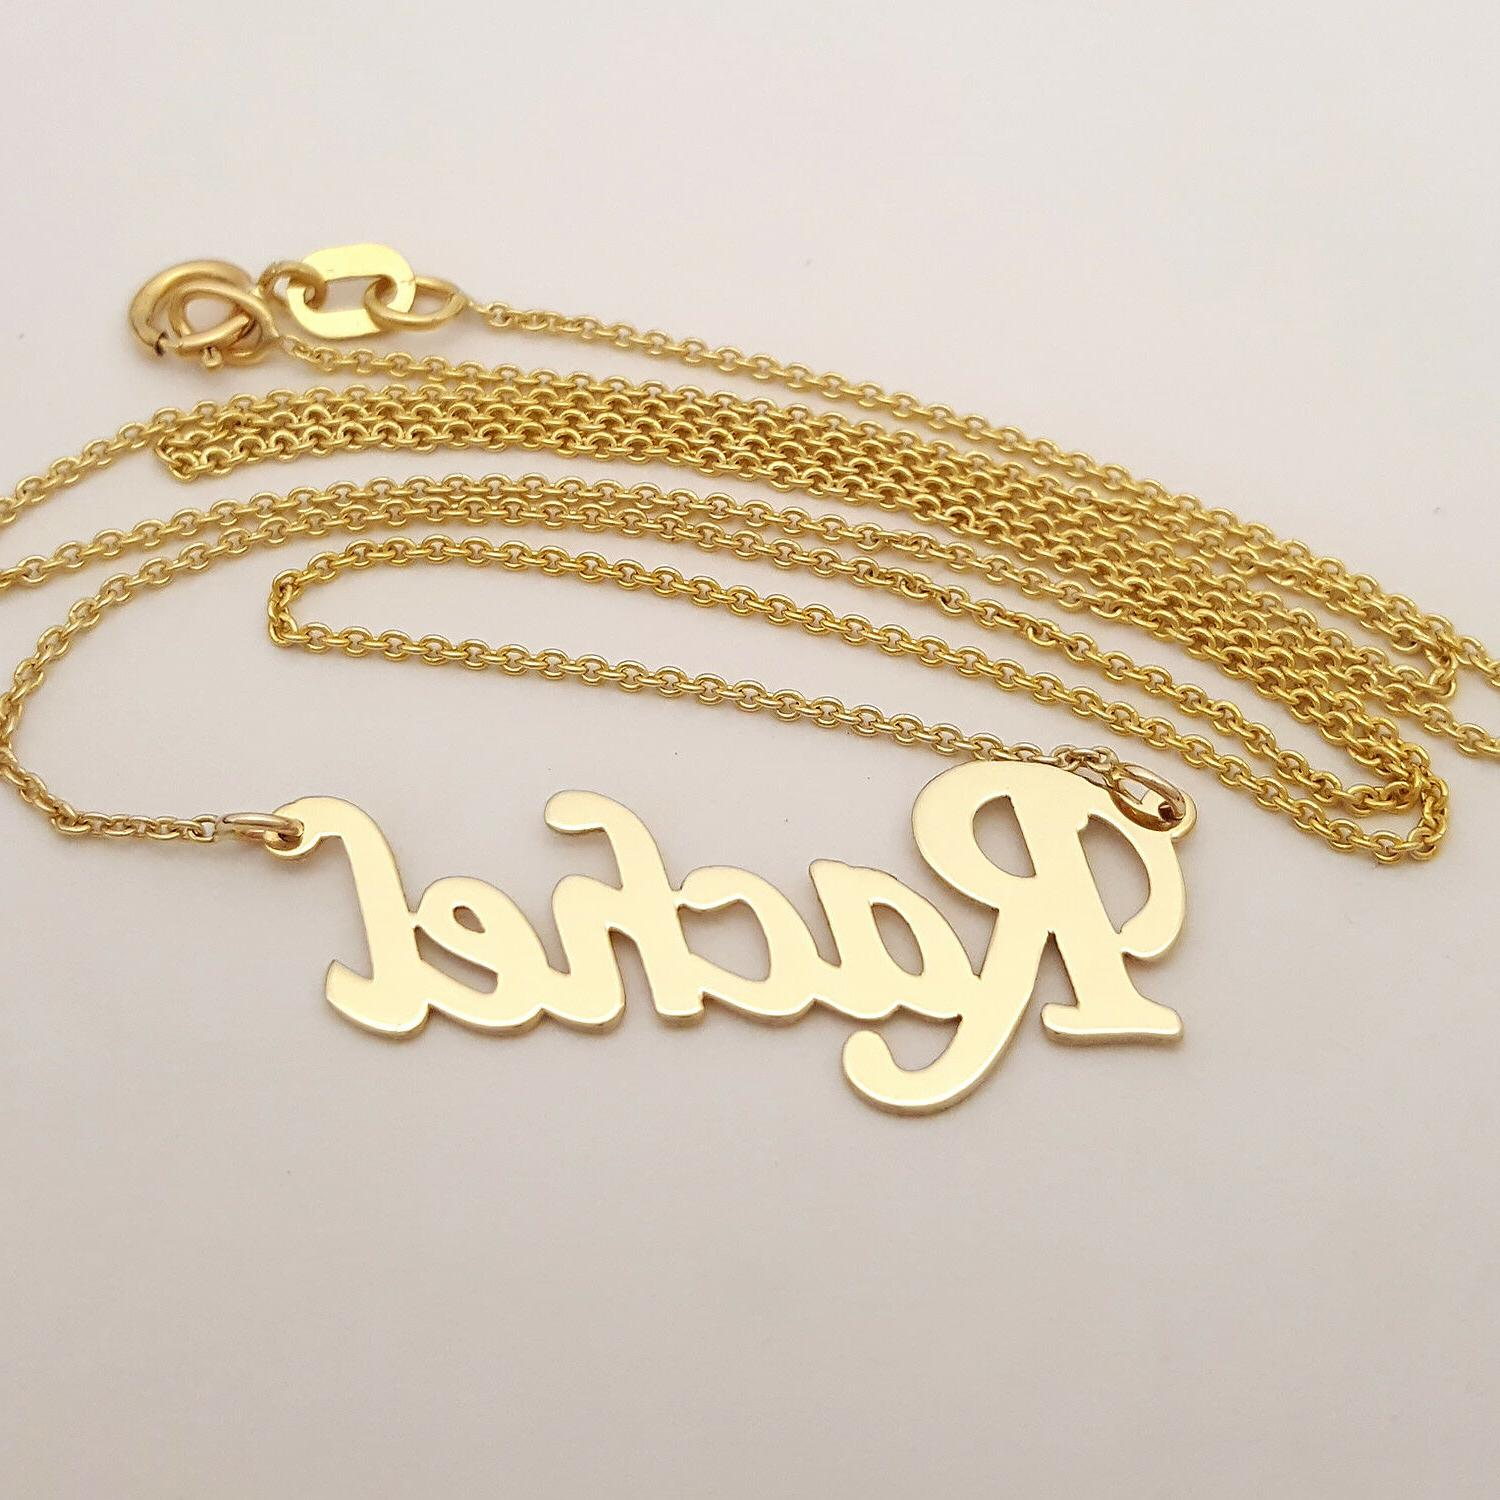 Dainty 14K Name Necklace, 1 Inch Personalized Necklace Cut GC51